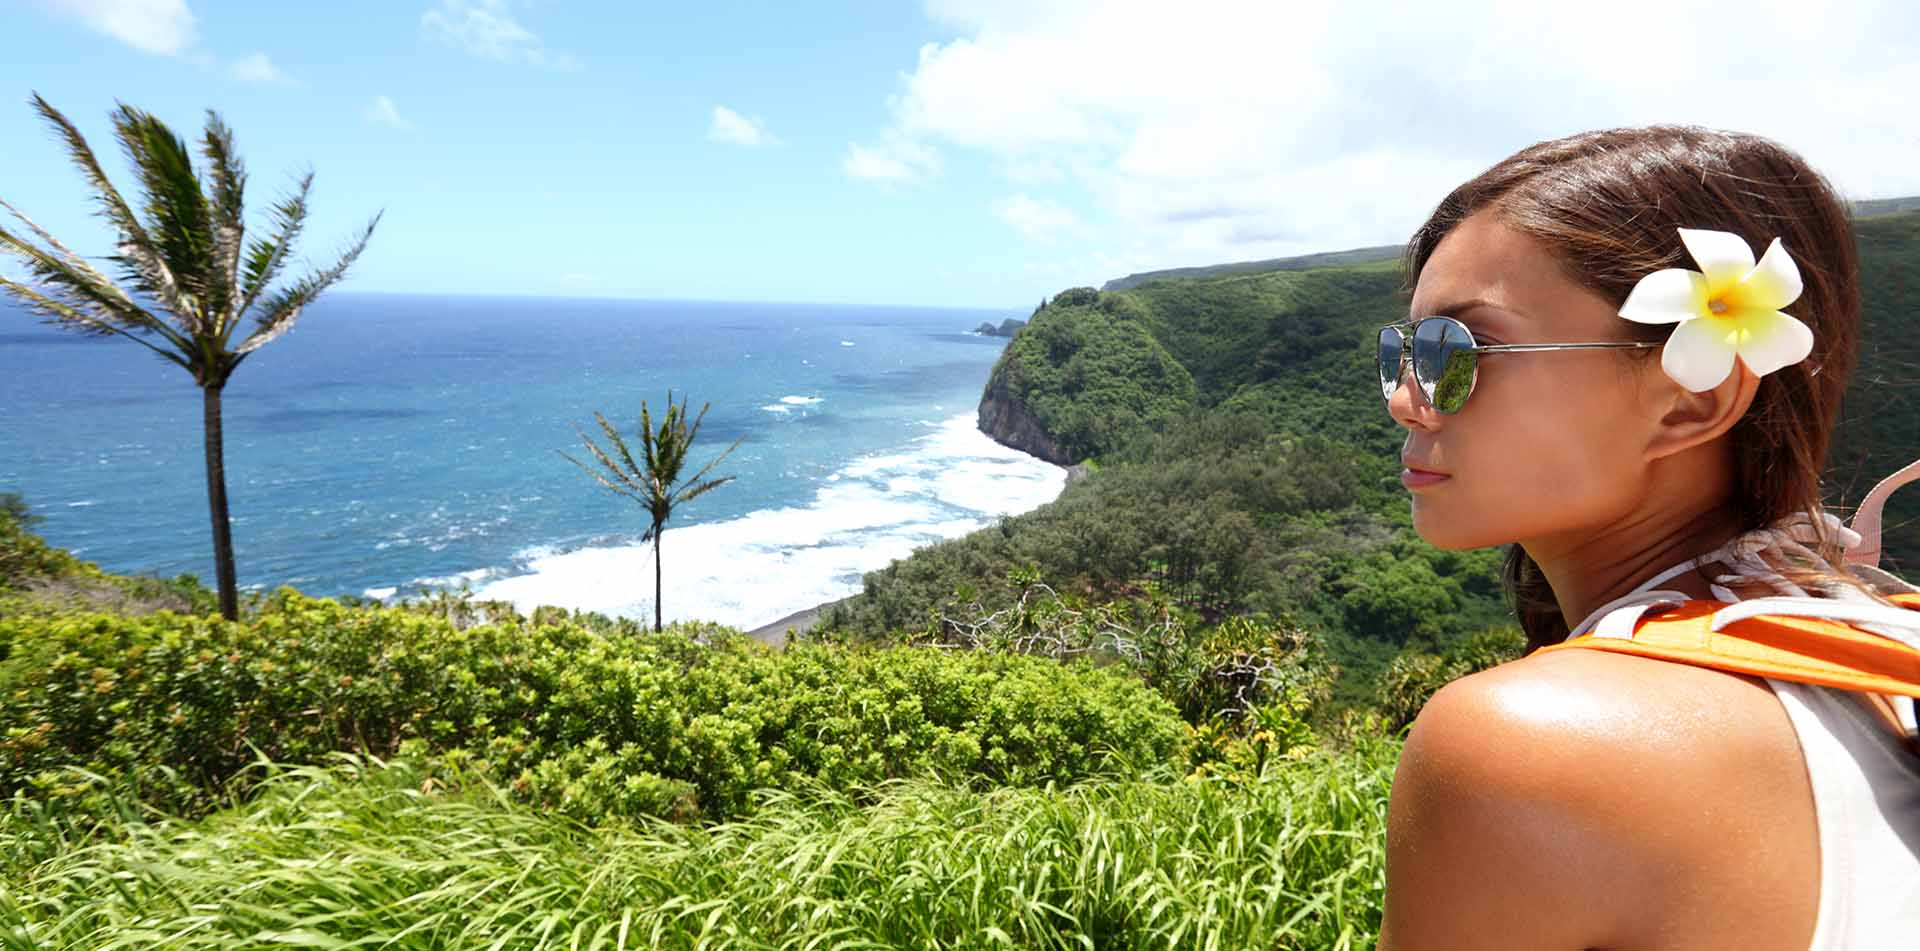 North America United States Hawaii scenic lush landscape blue water young woman looking - luxury vacation destinations